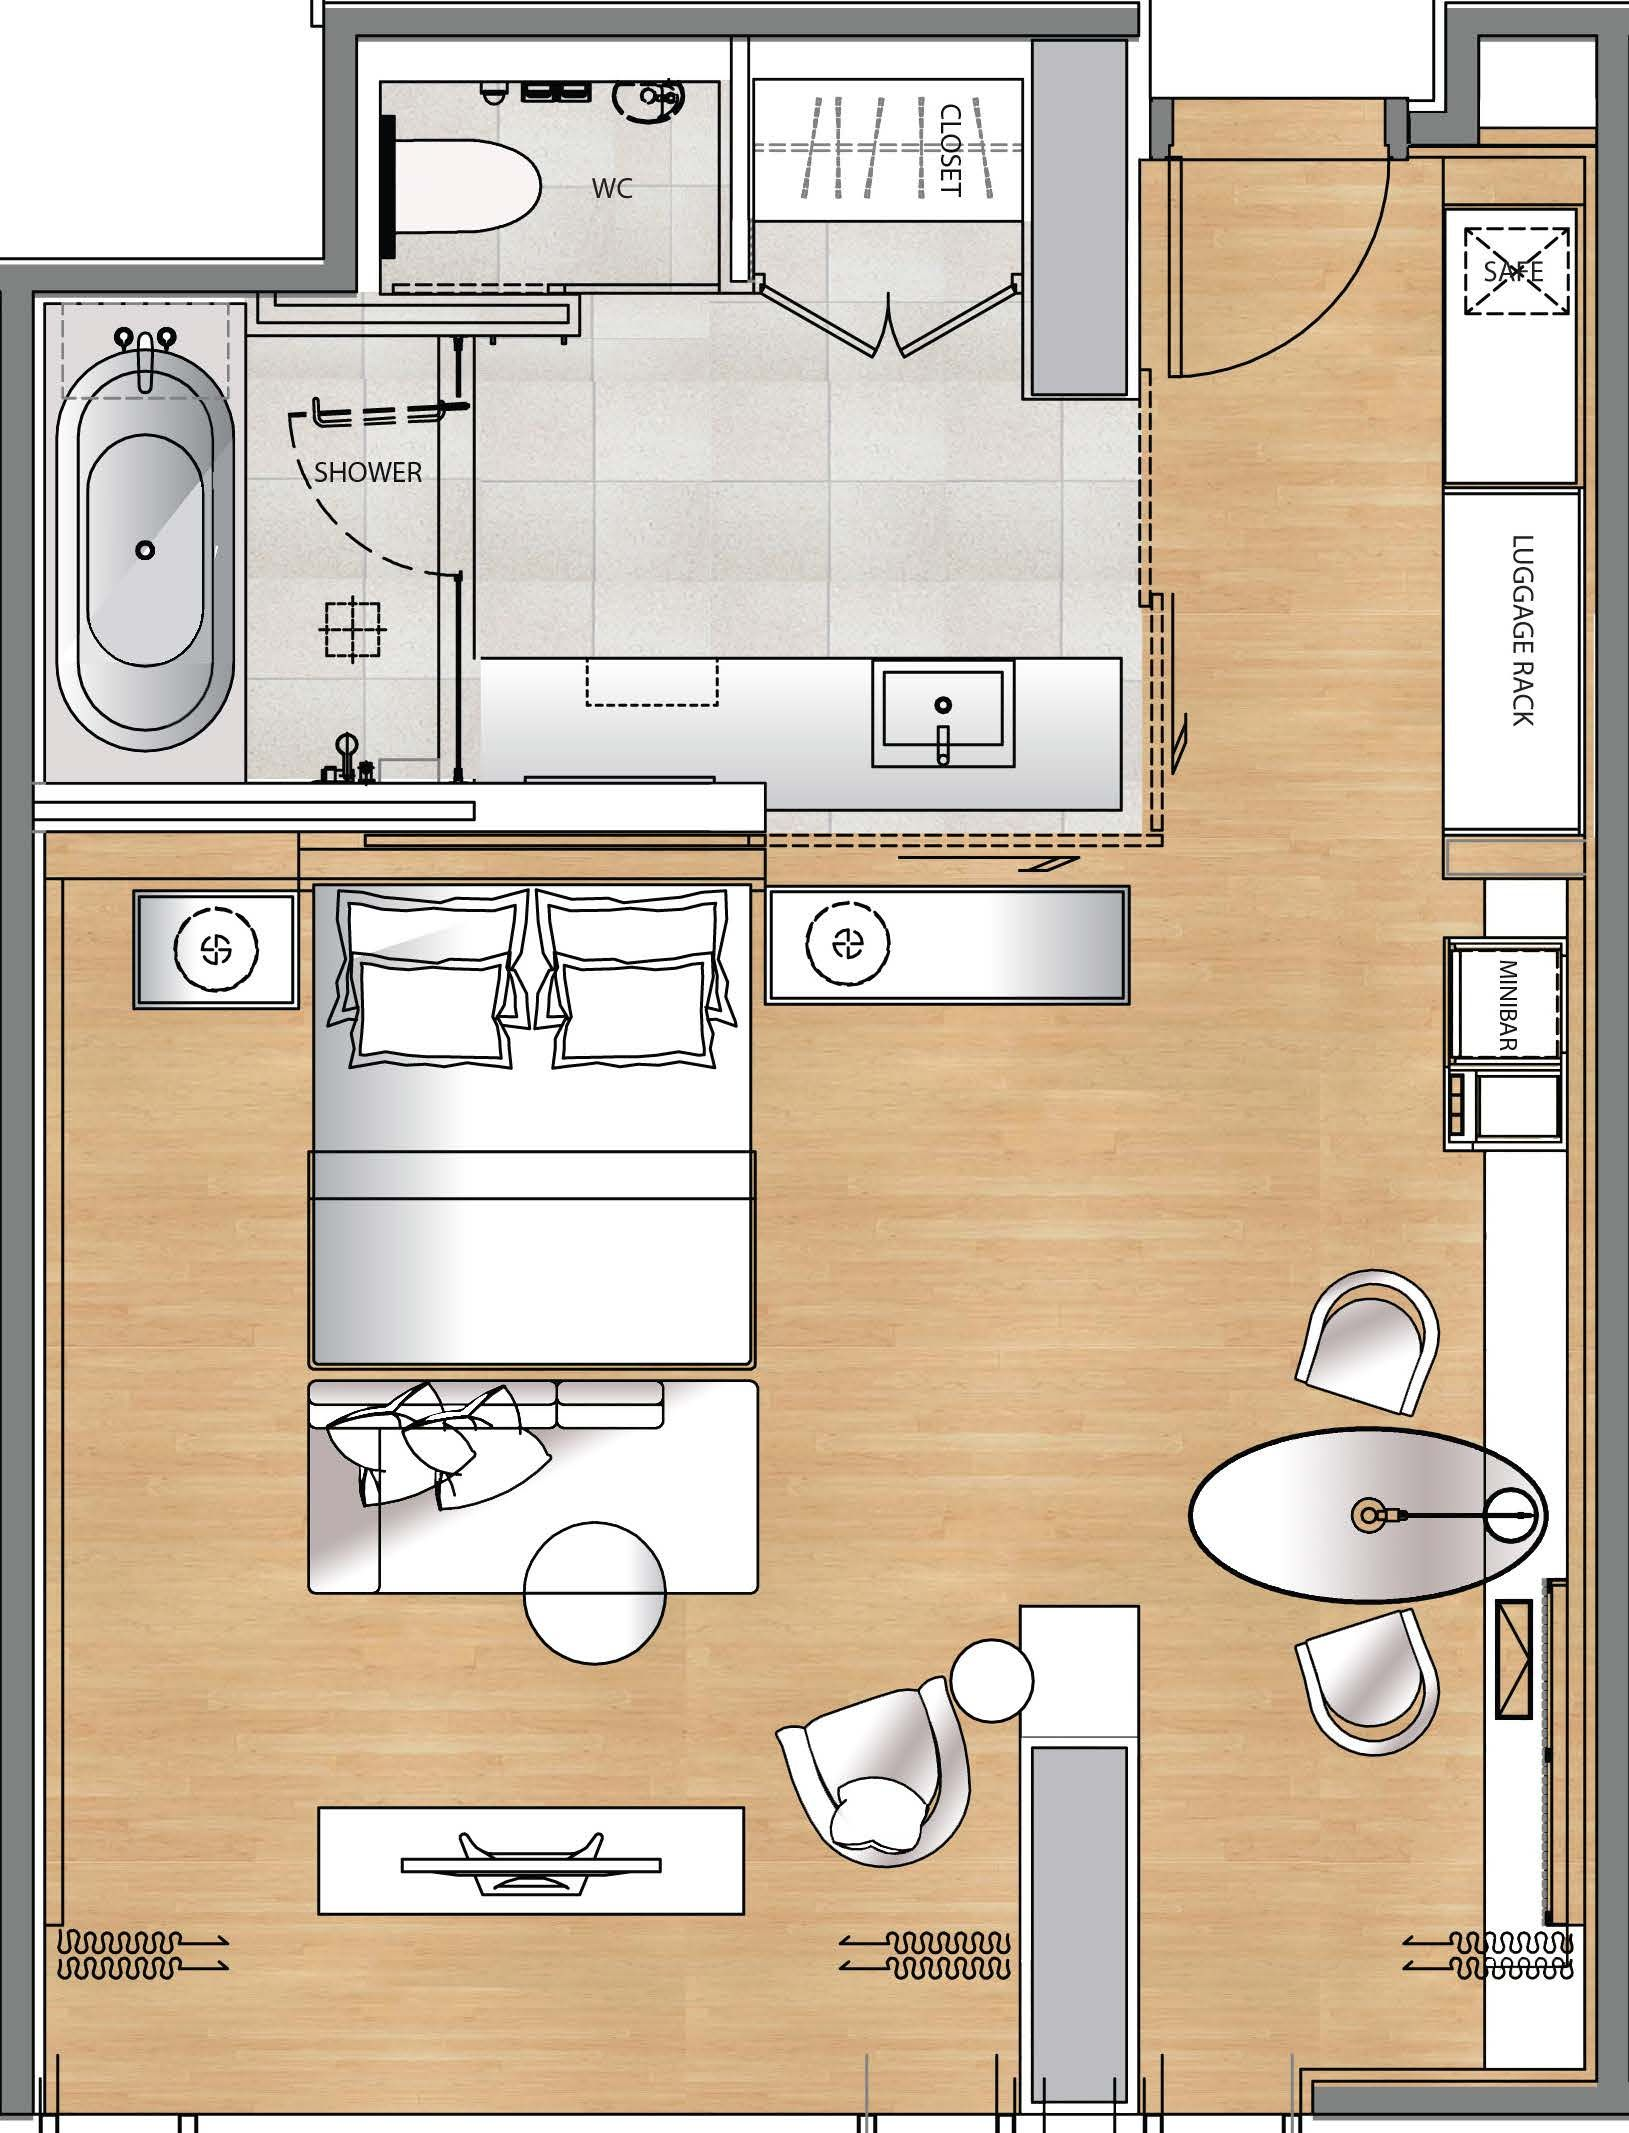 Hotel gym floor plan google search hotel rooms for Free room layout